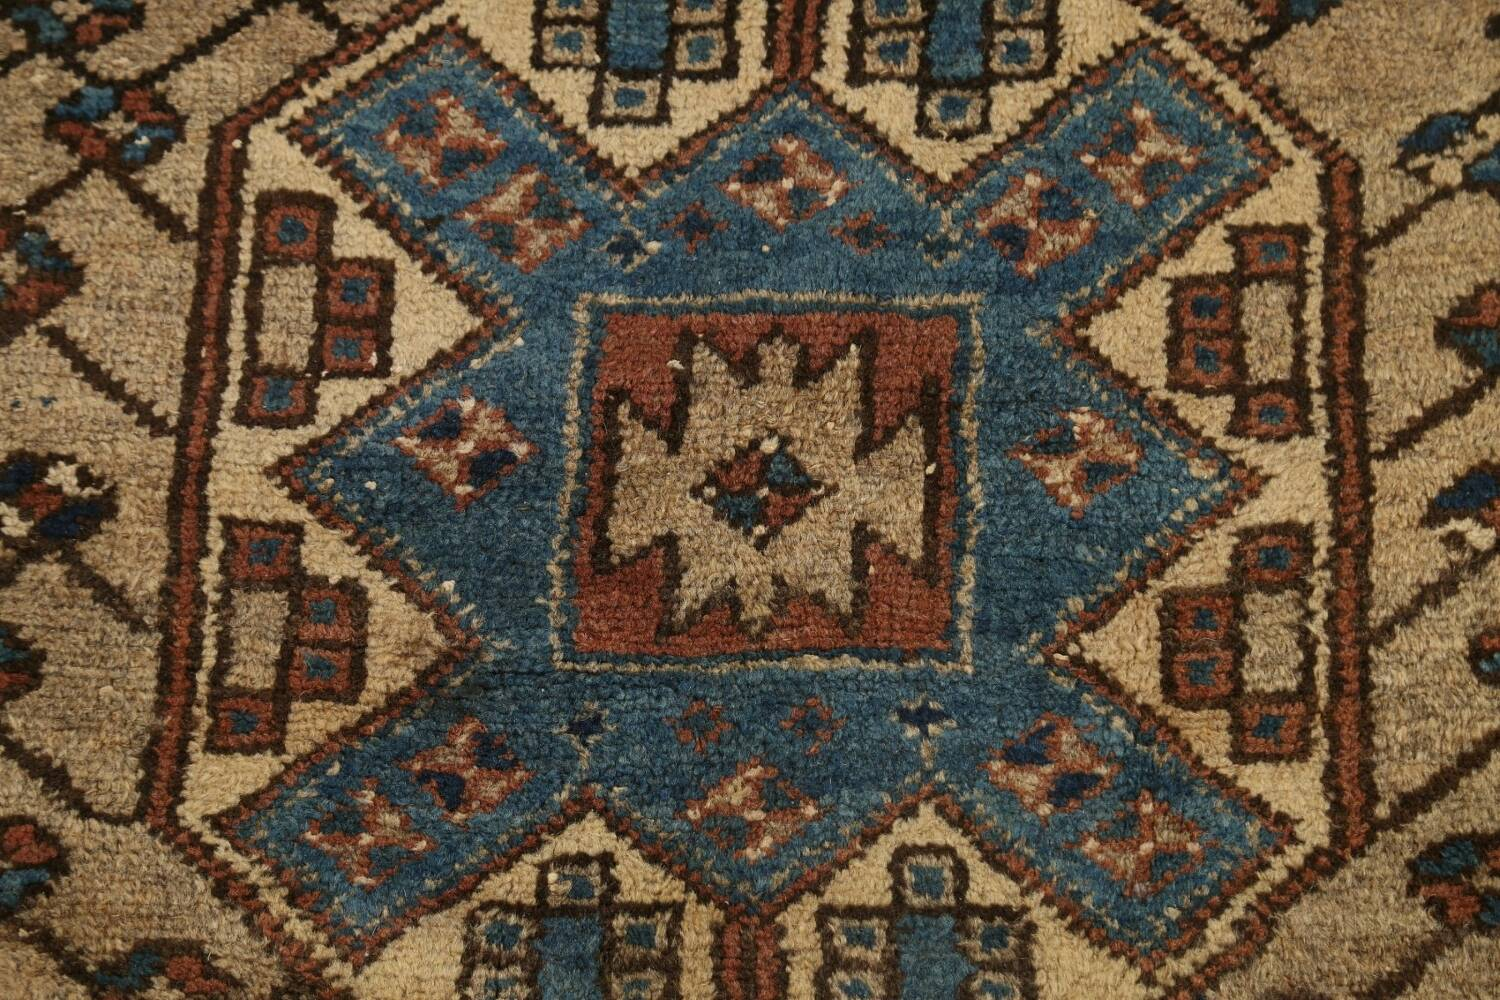 Pre-1900 Antique Vegetable Dye Malayer Persian Runner Rug 4x13 image 9